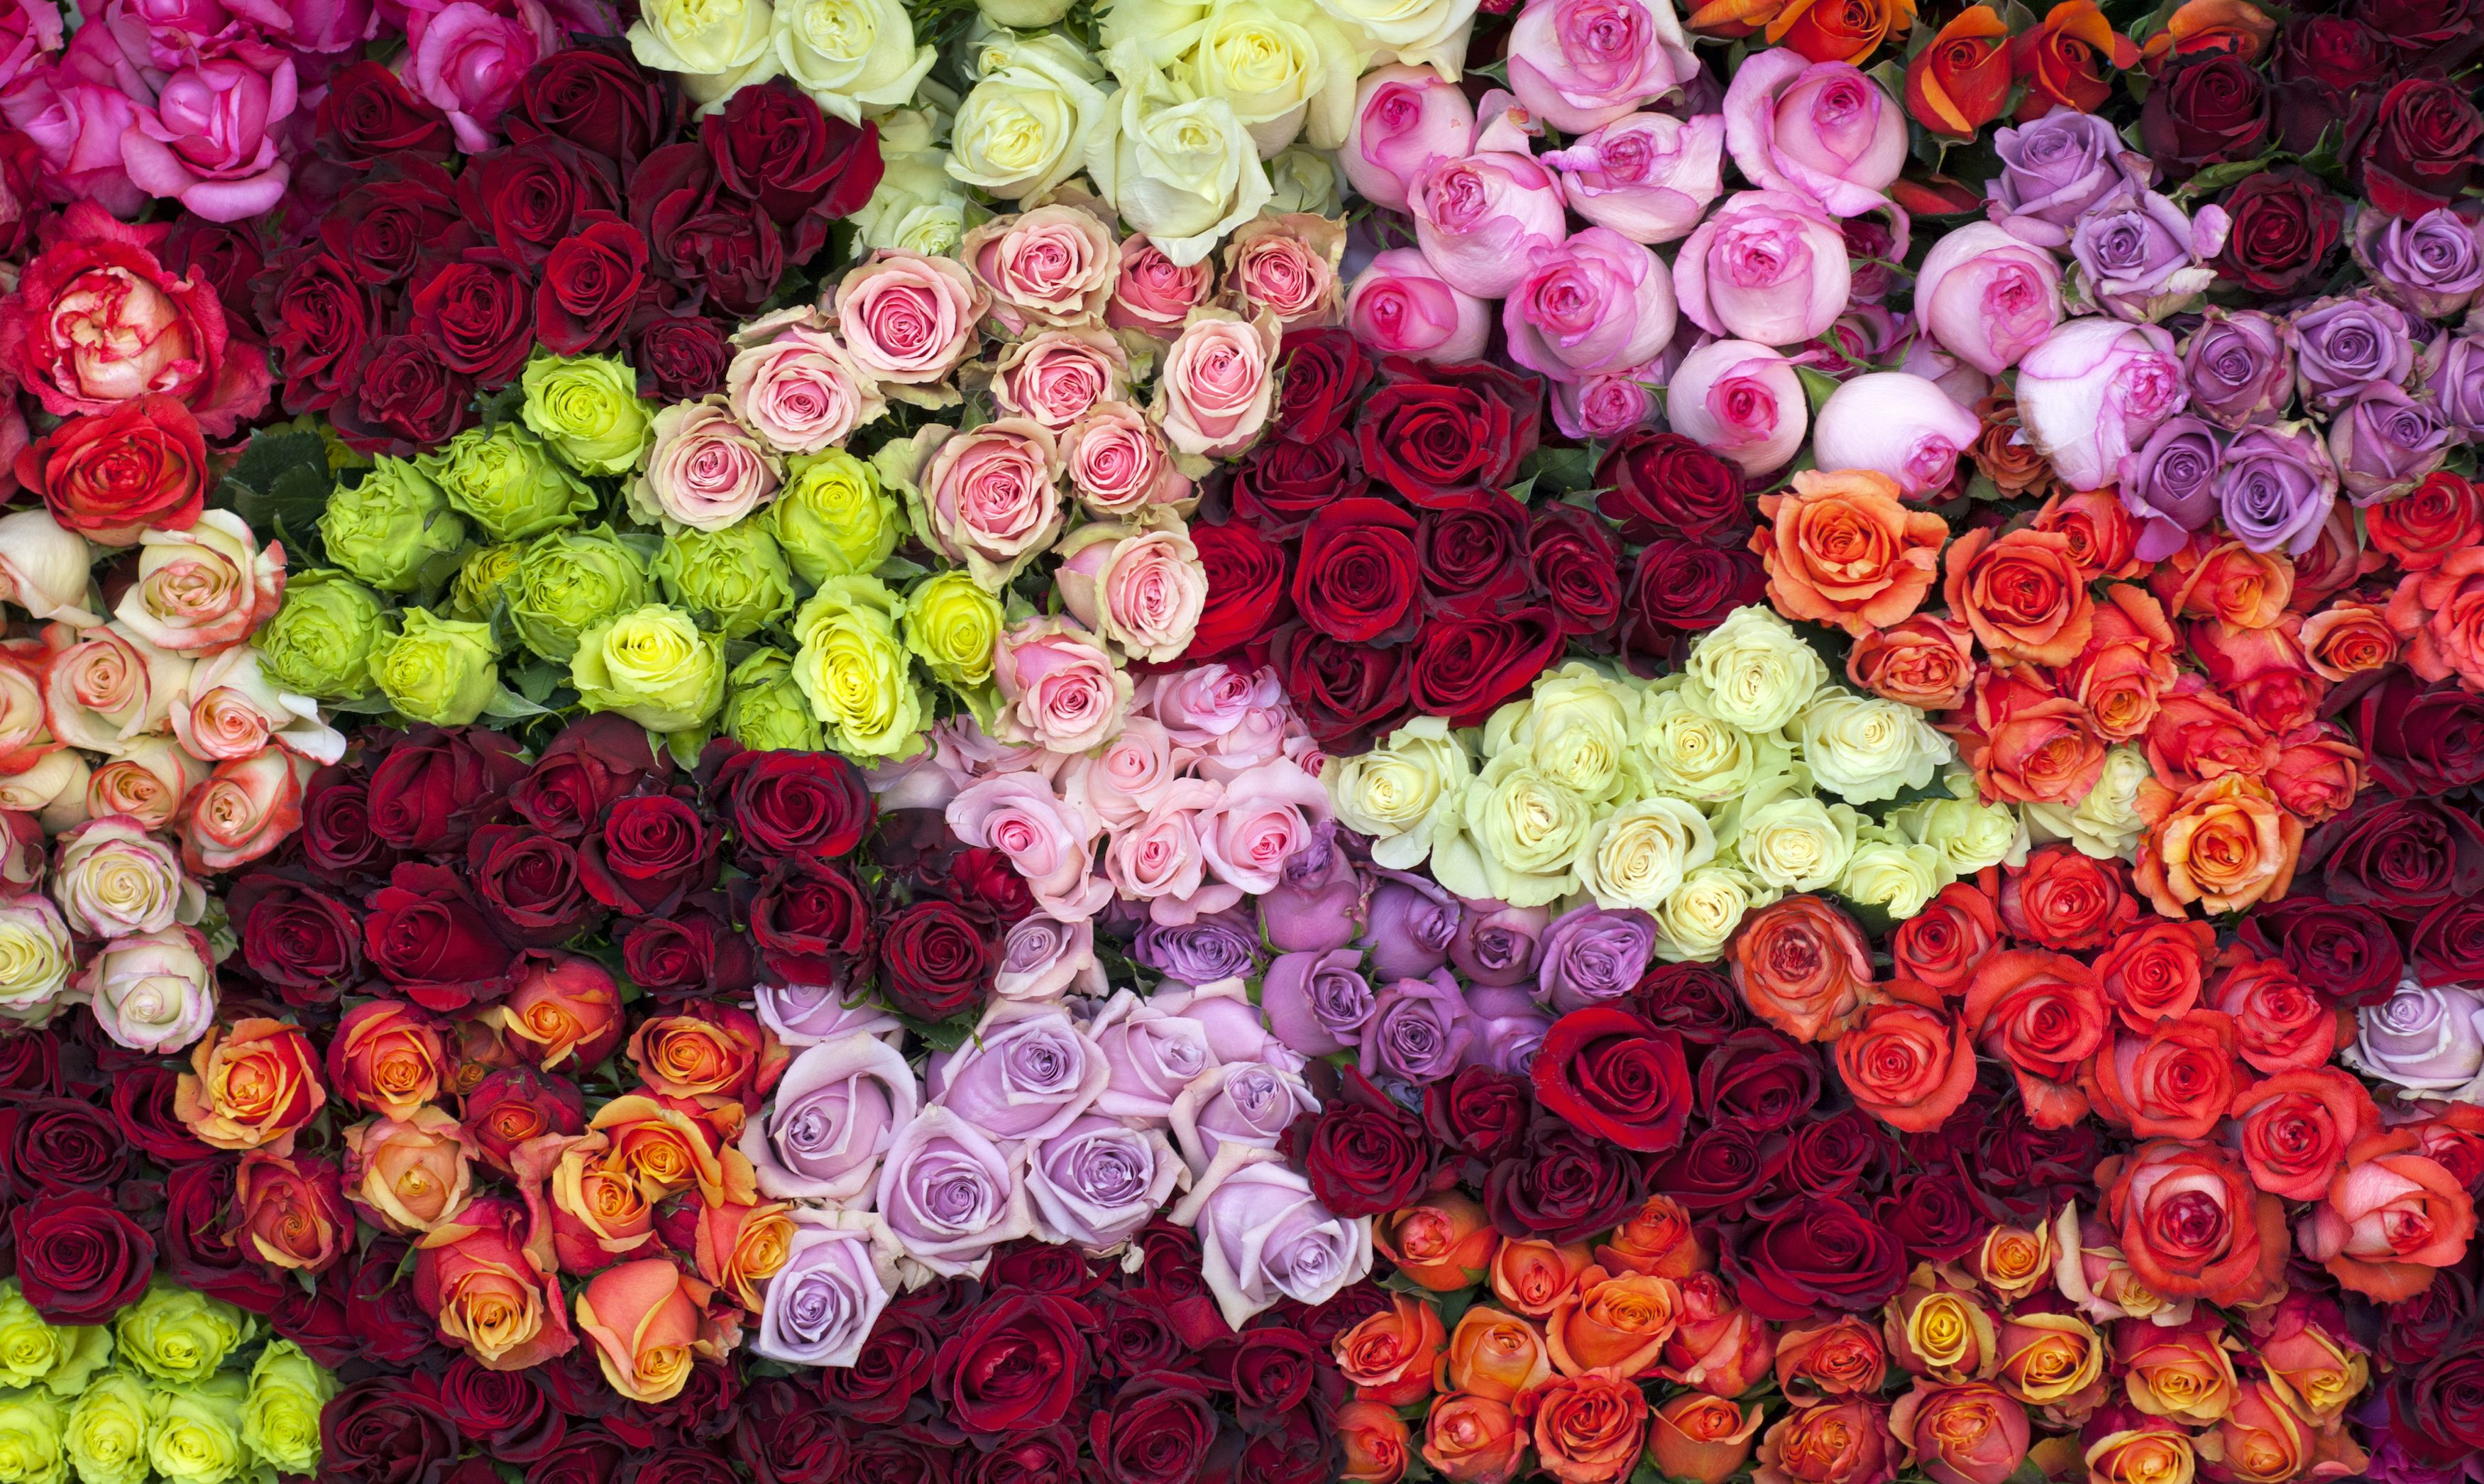 14 rose color meanings what do the colors of roses mean for 14 rose color meanings what do the colors of roses mean for valentines day biocorpaavc Images